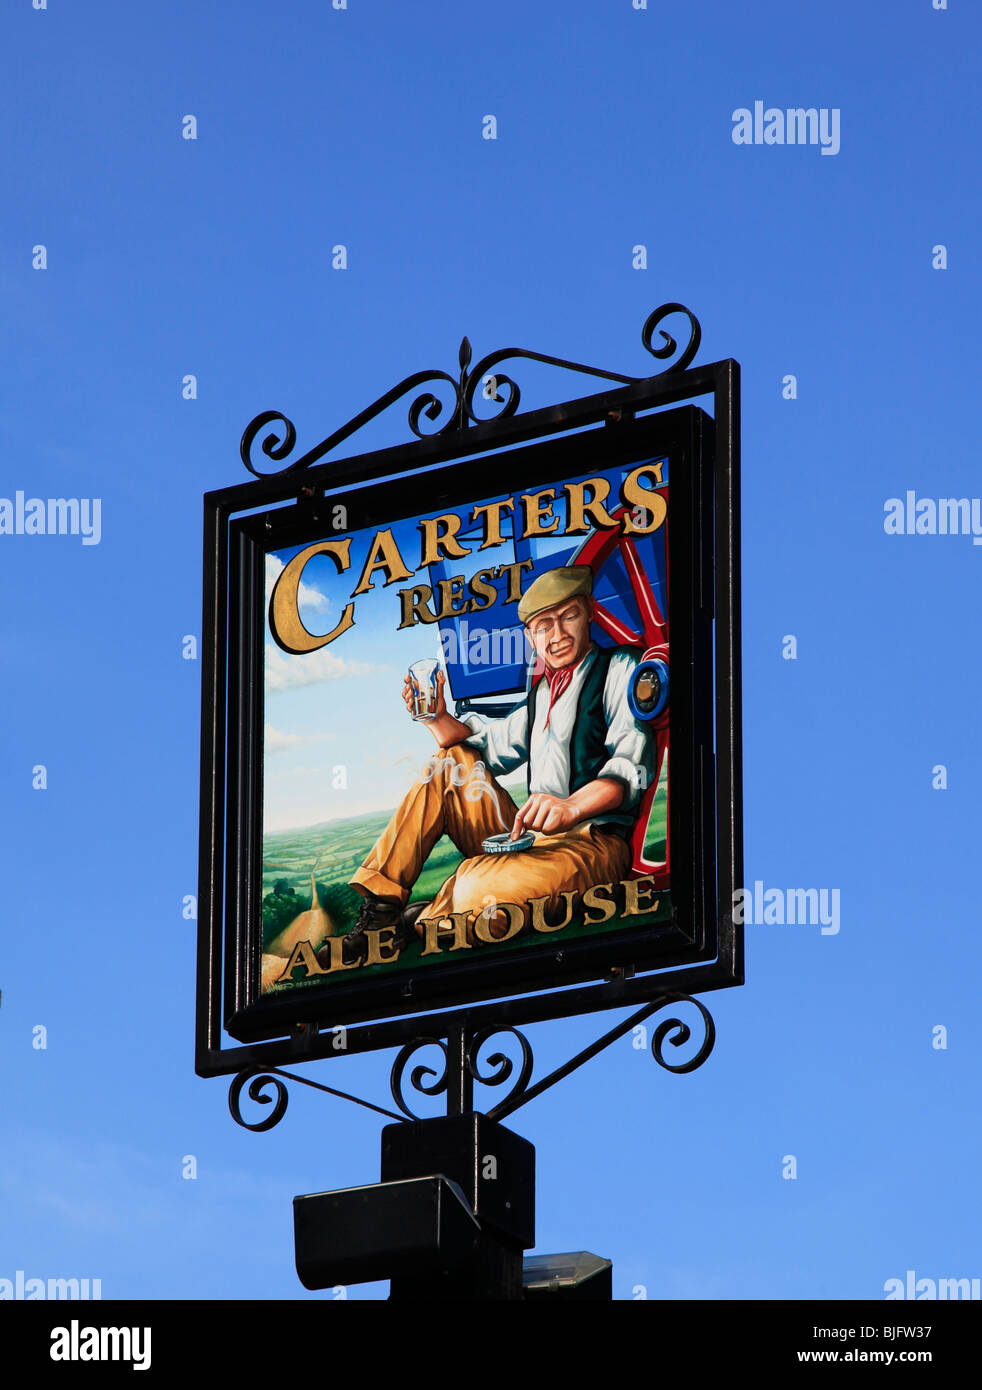 Painted pub sign 'Carter's Rest' against a clear deep blue sky - Stock Image